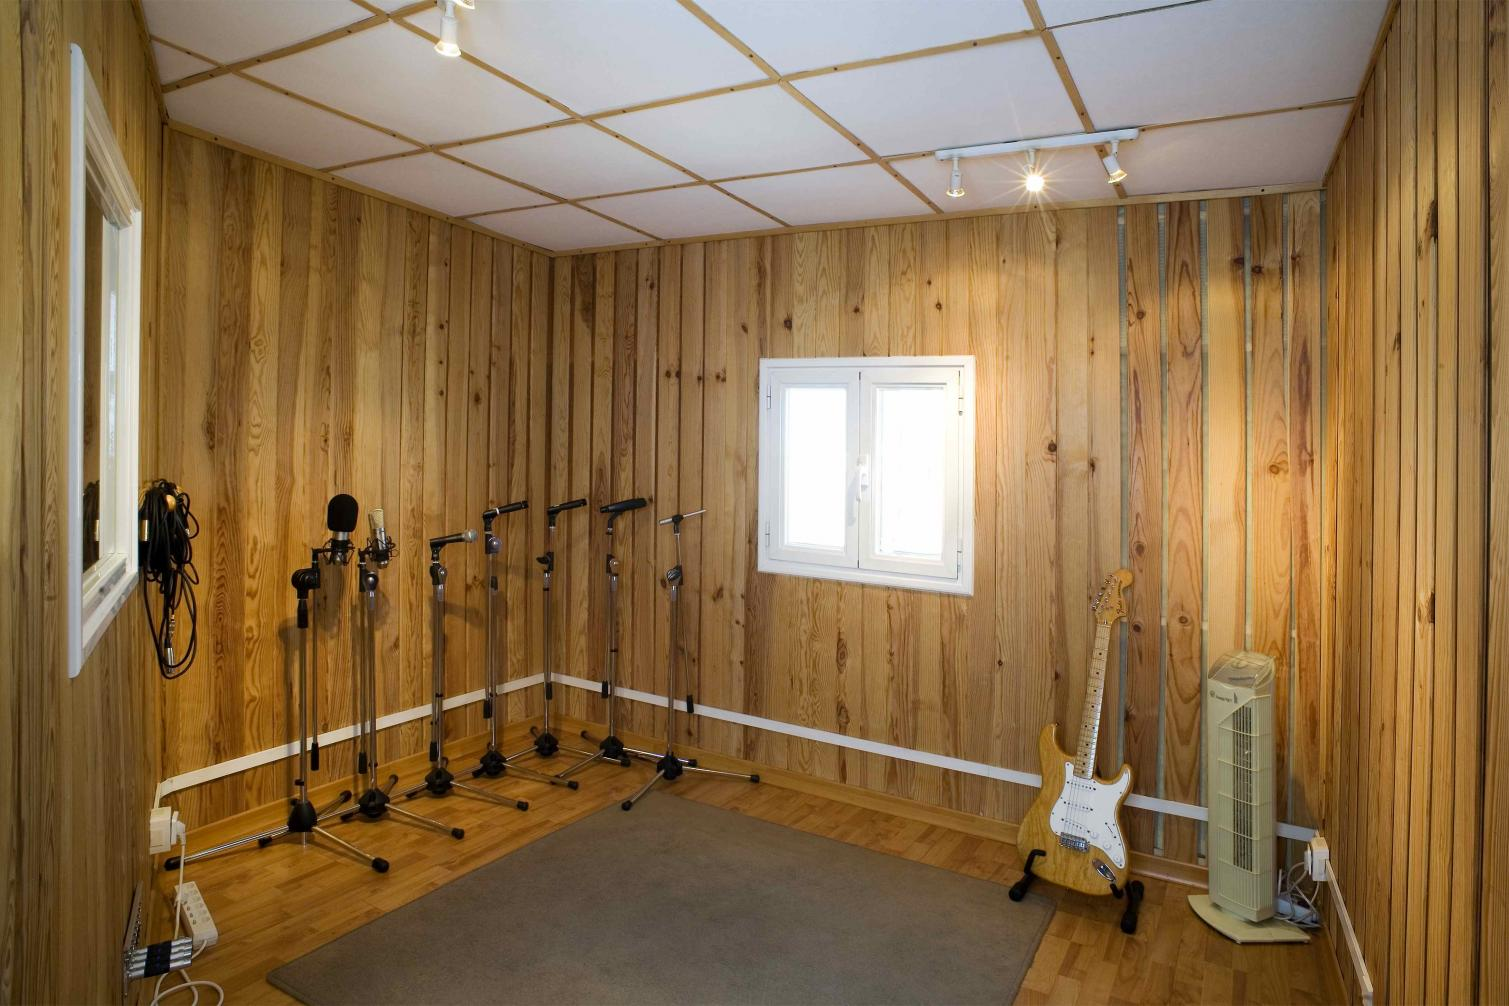 How Do You Make A Room Have Good Acoustics